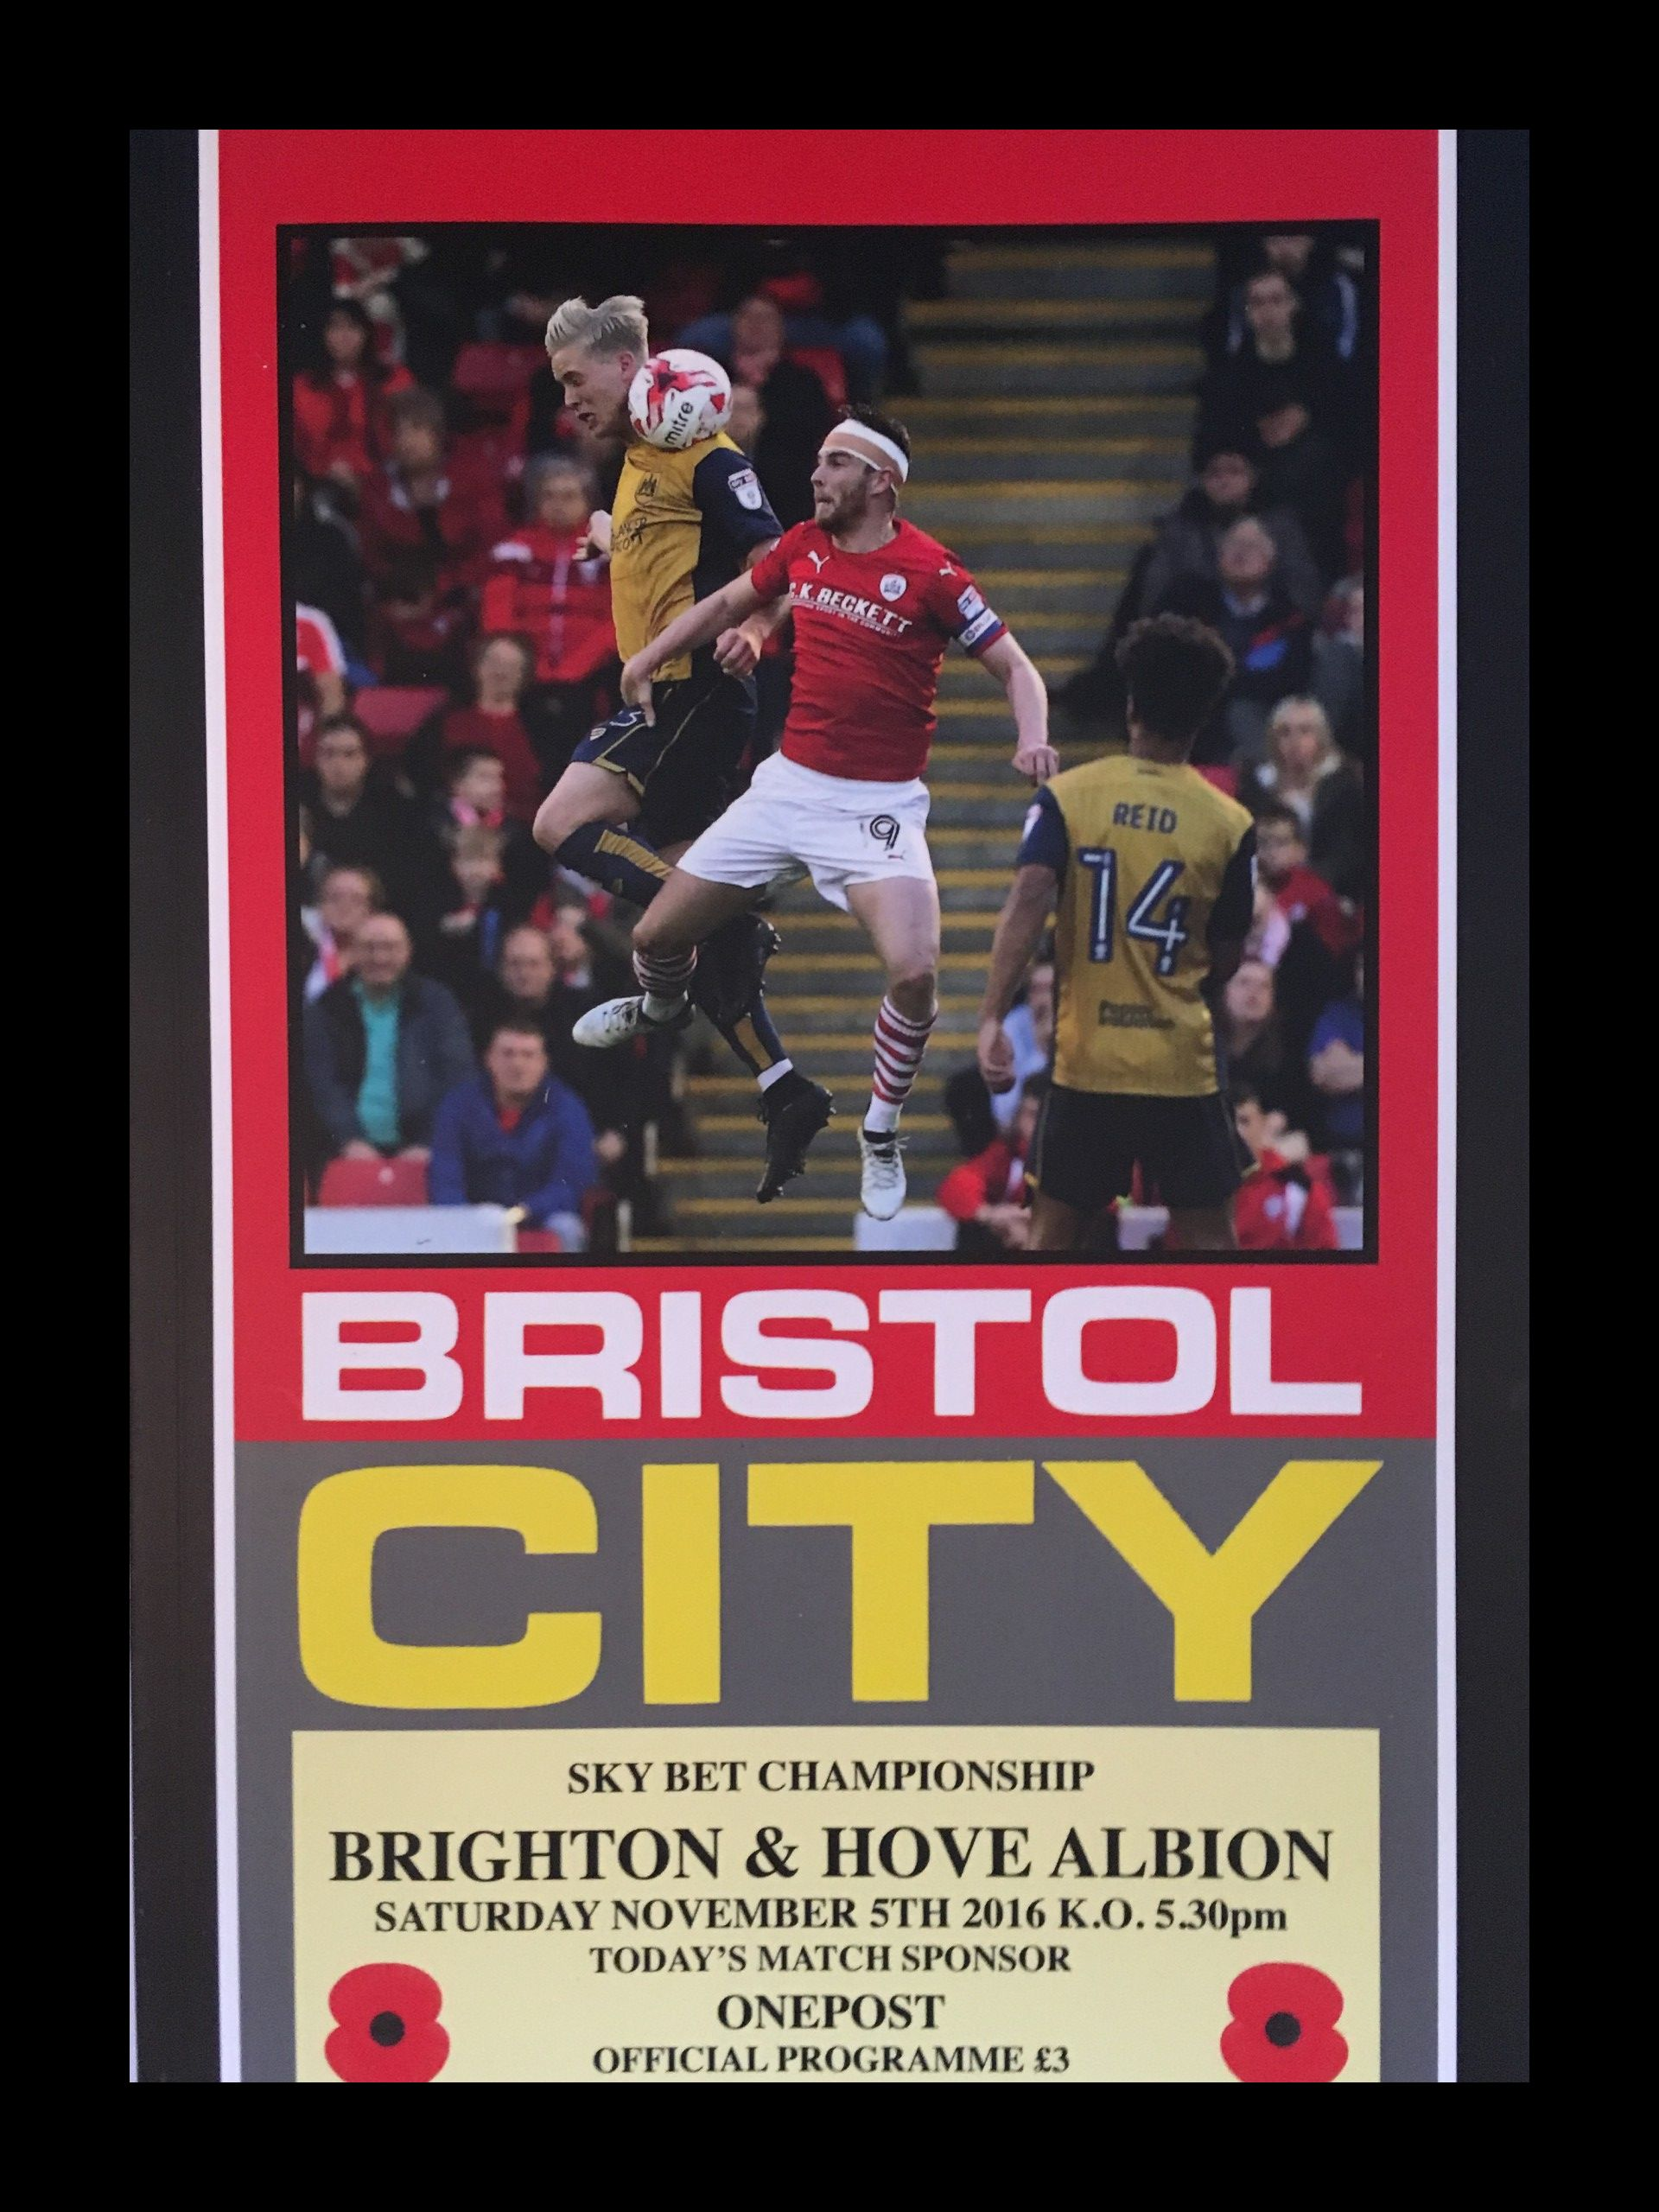 Bristol City v Brighton and Hove Albion 05-11-2016 Programme